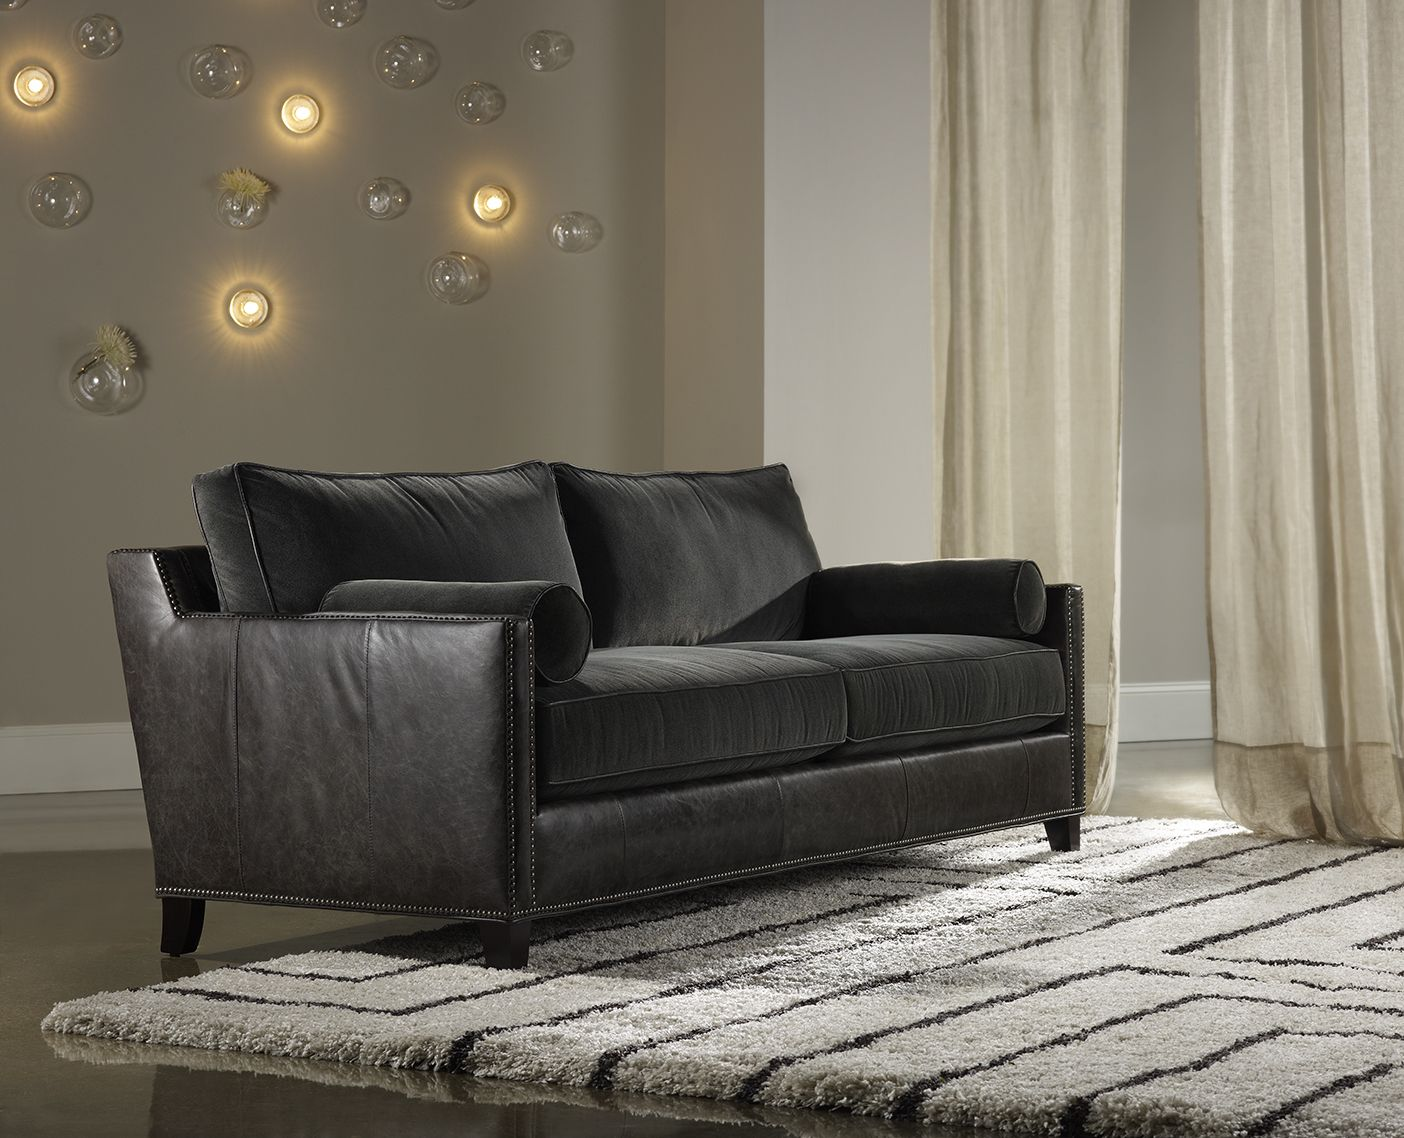 Best The Davlin Sofa In Charcoal Grey And Mohair Has A Retro 400 x 300